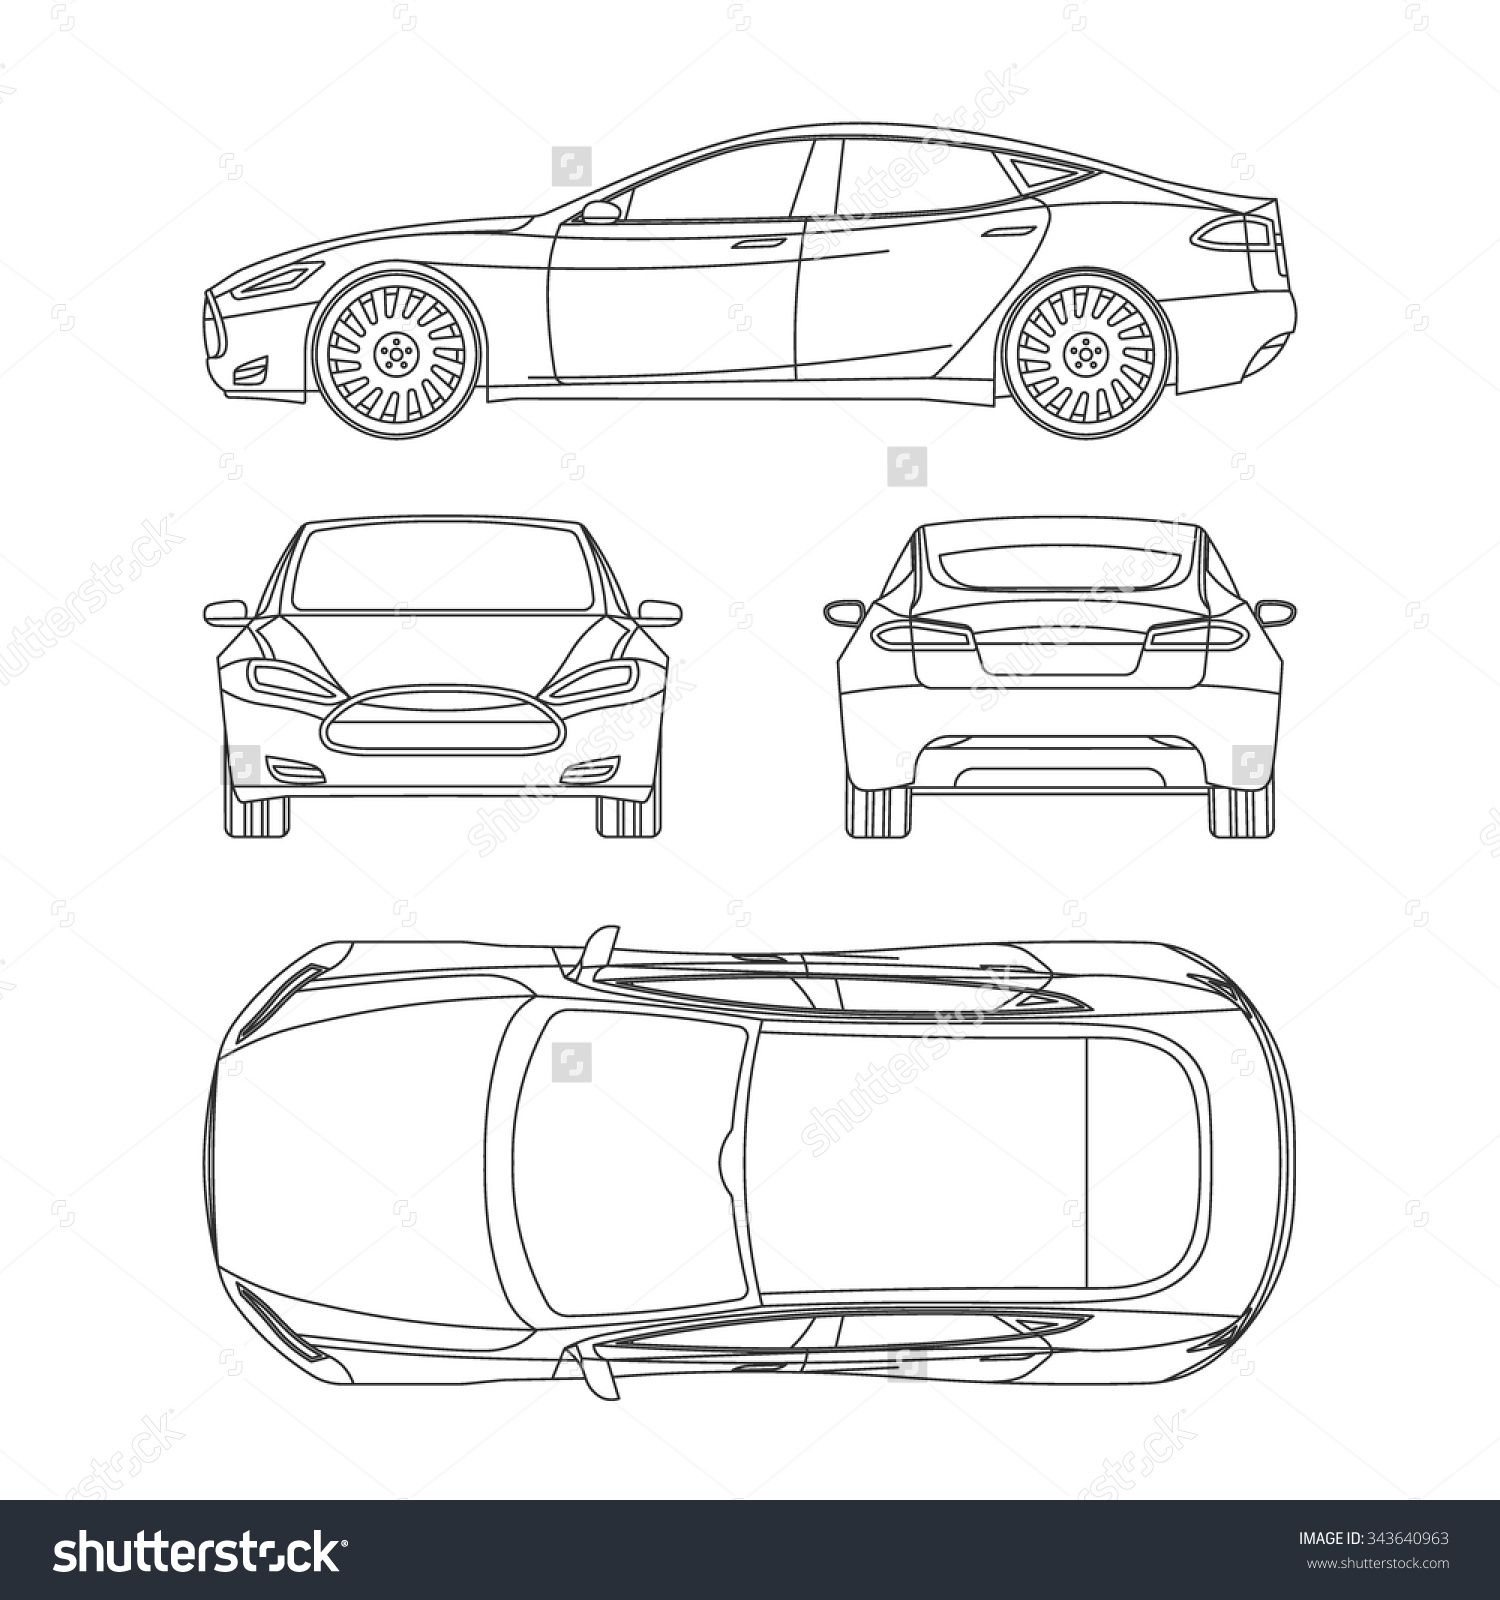 plan view stock photos images pictures shutterstock car line draw blueprint front four side top. Black Bedroom Furniture Sets. Home Design Ideas